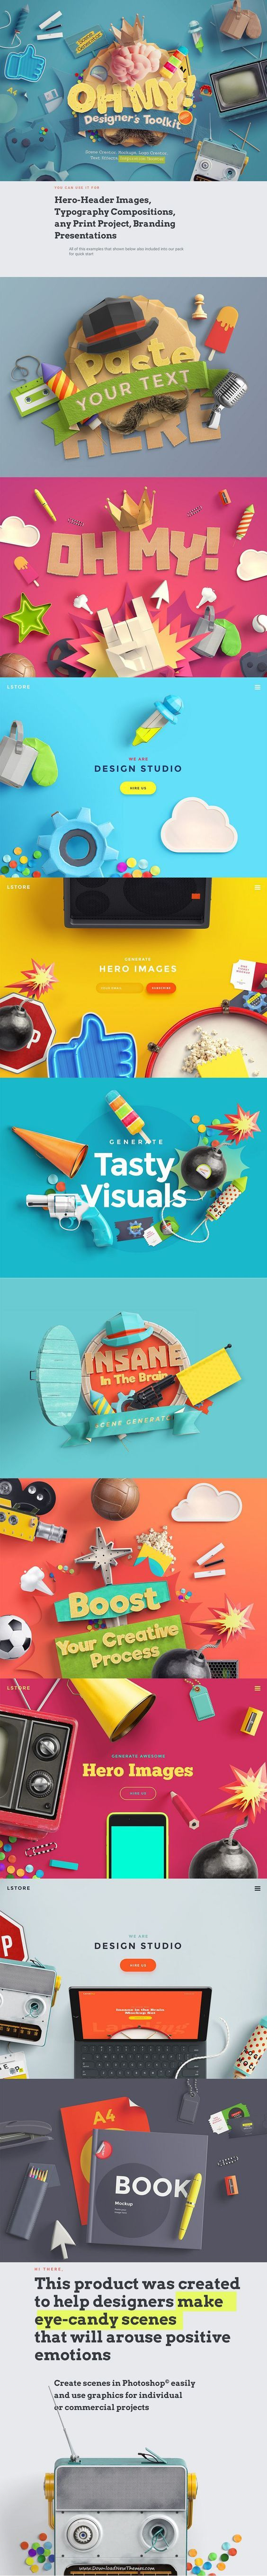 Eye-candy scenes that will arouse positive emotions. Create scenes in Photoshop easily and use graphics for individual or commercial projects.